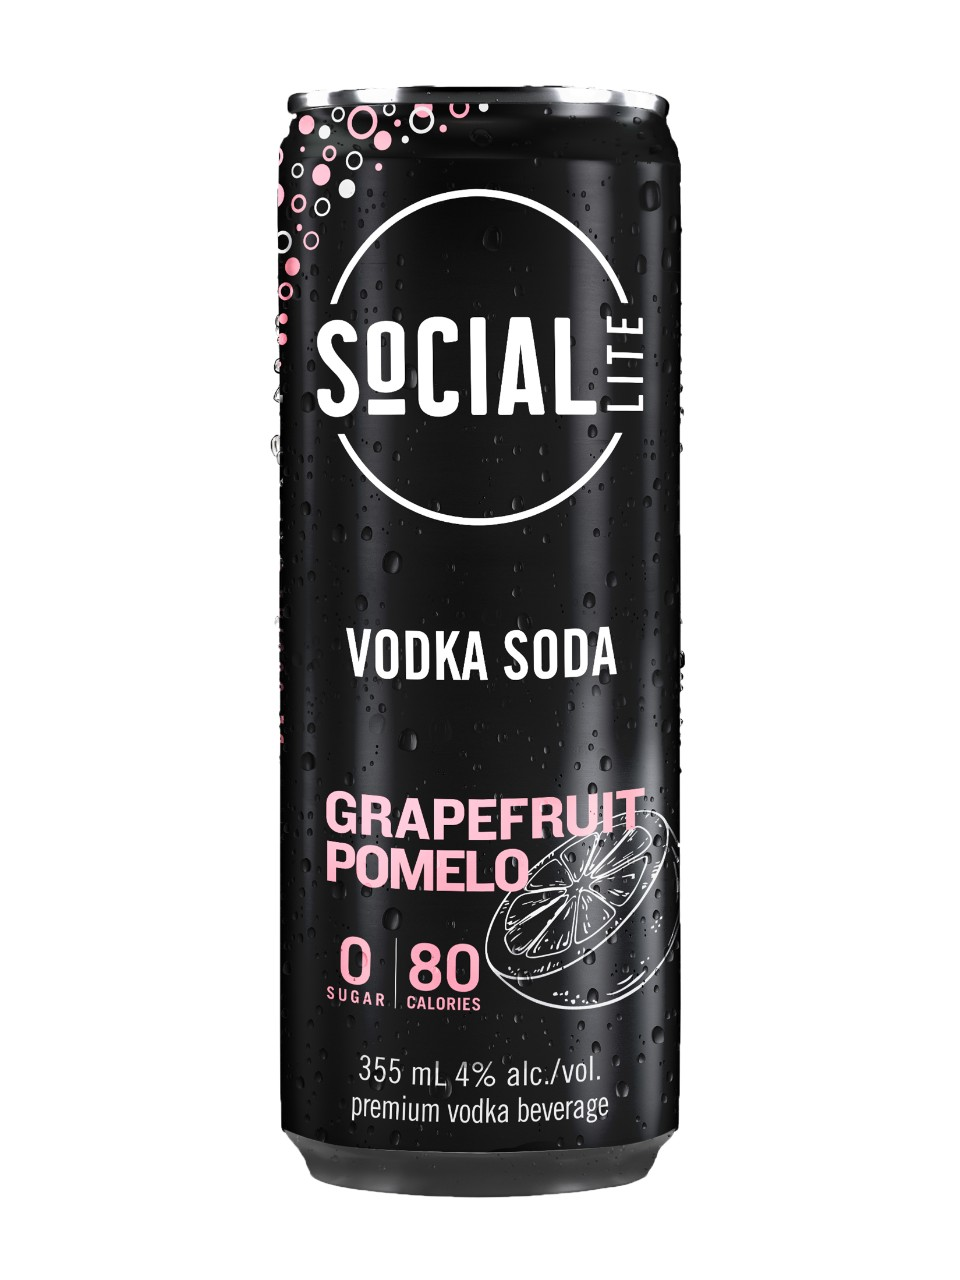 Social Lite Grapefruit Pomelo Vodka Soda from LCBO